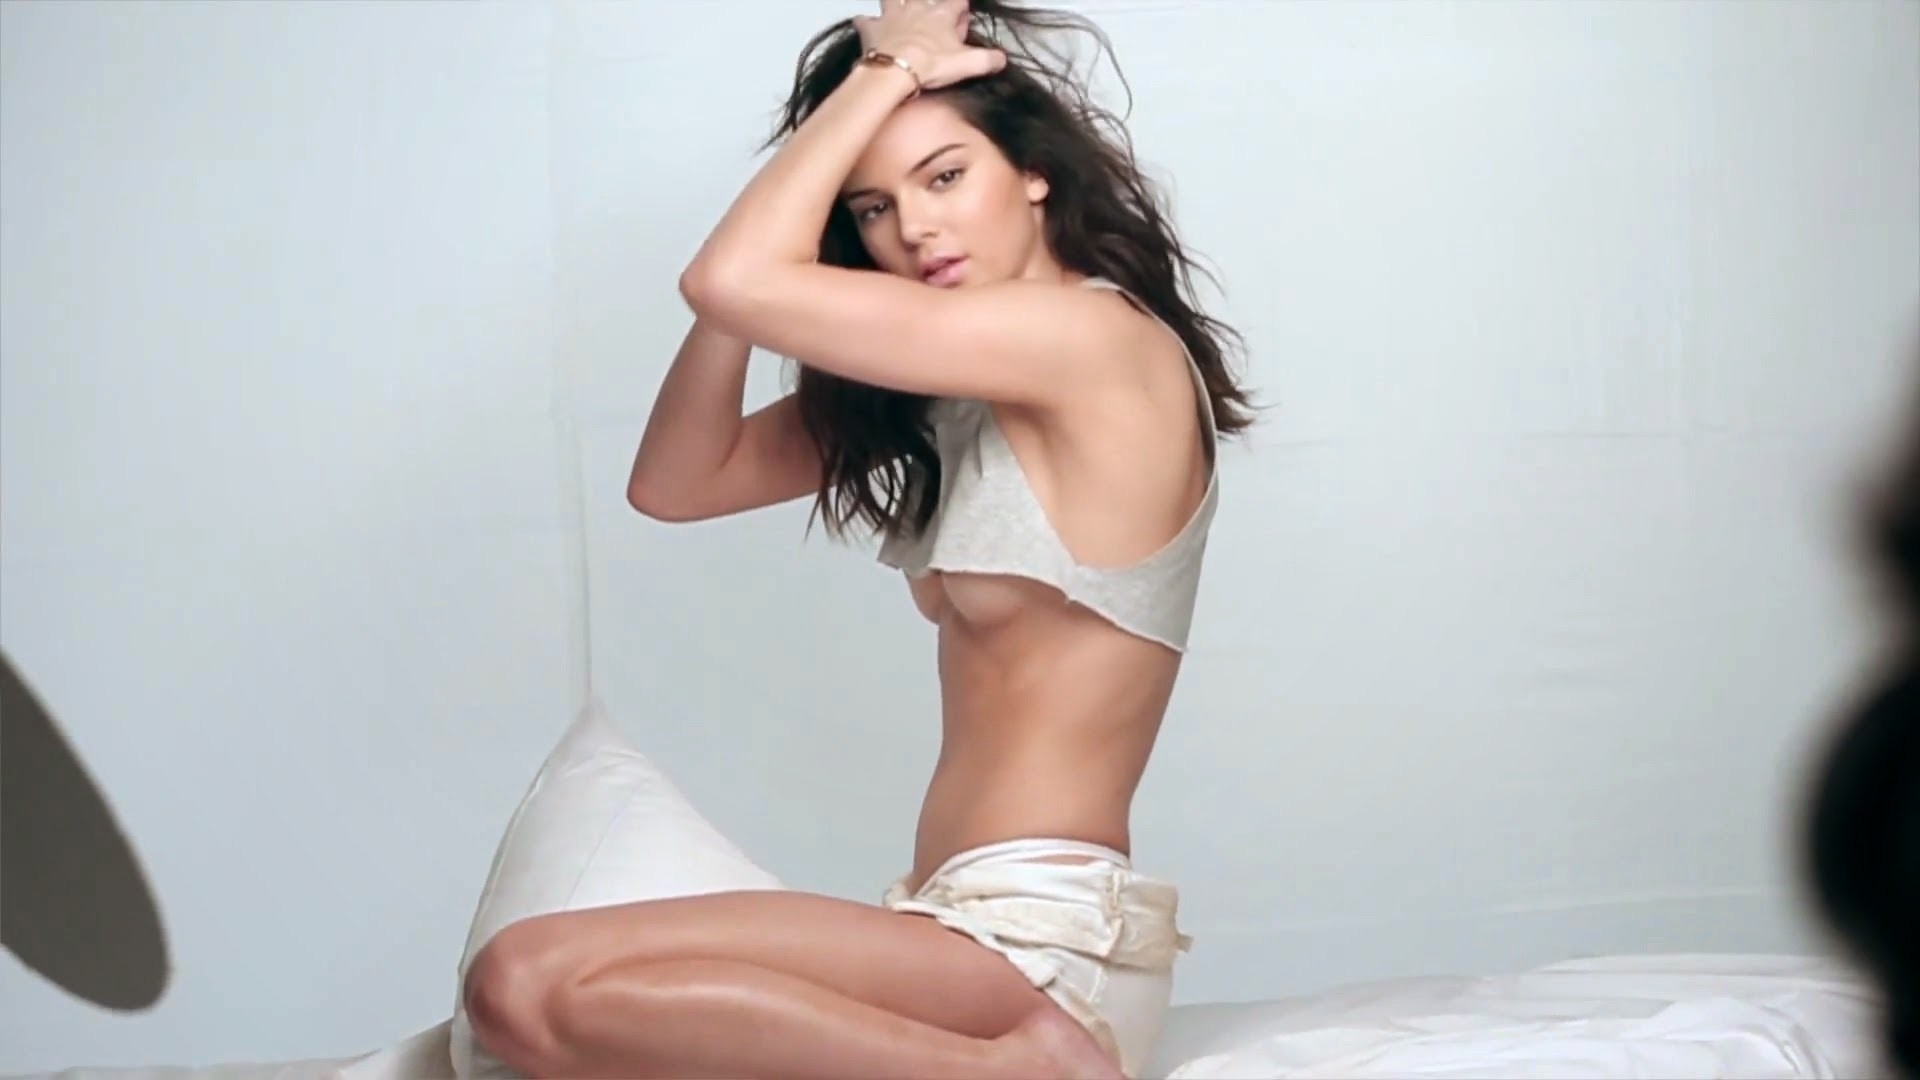 Sexy pics of kendall jenner